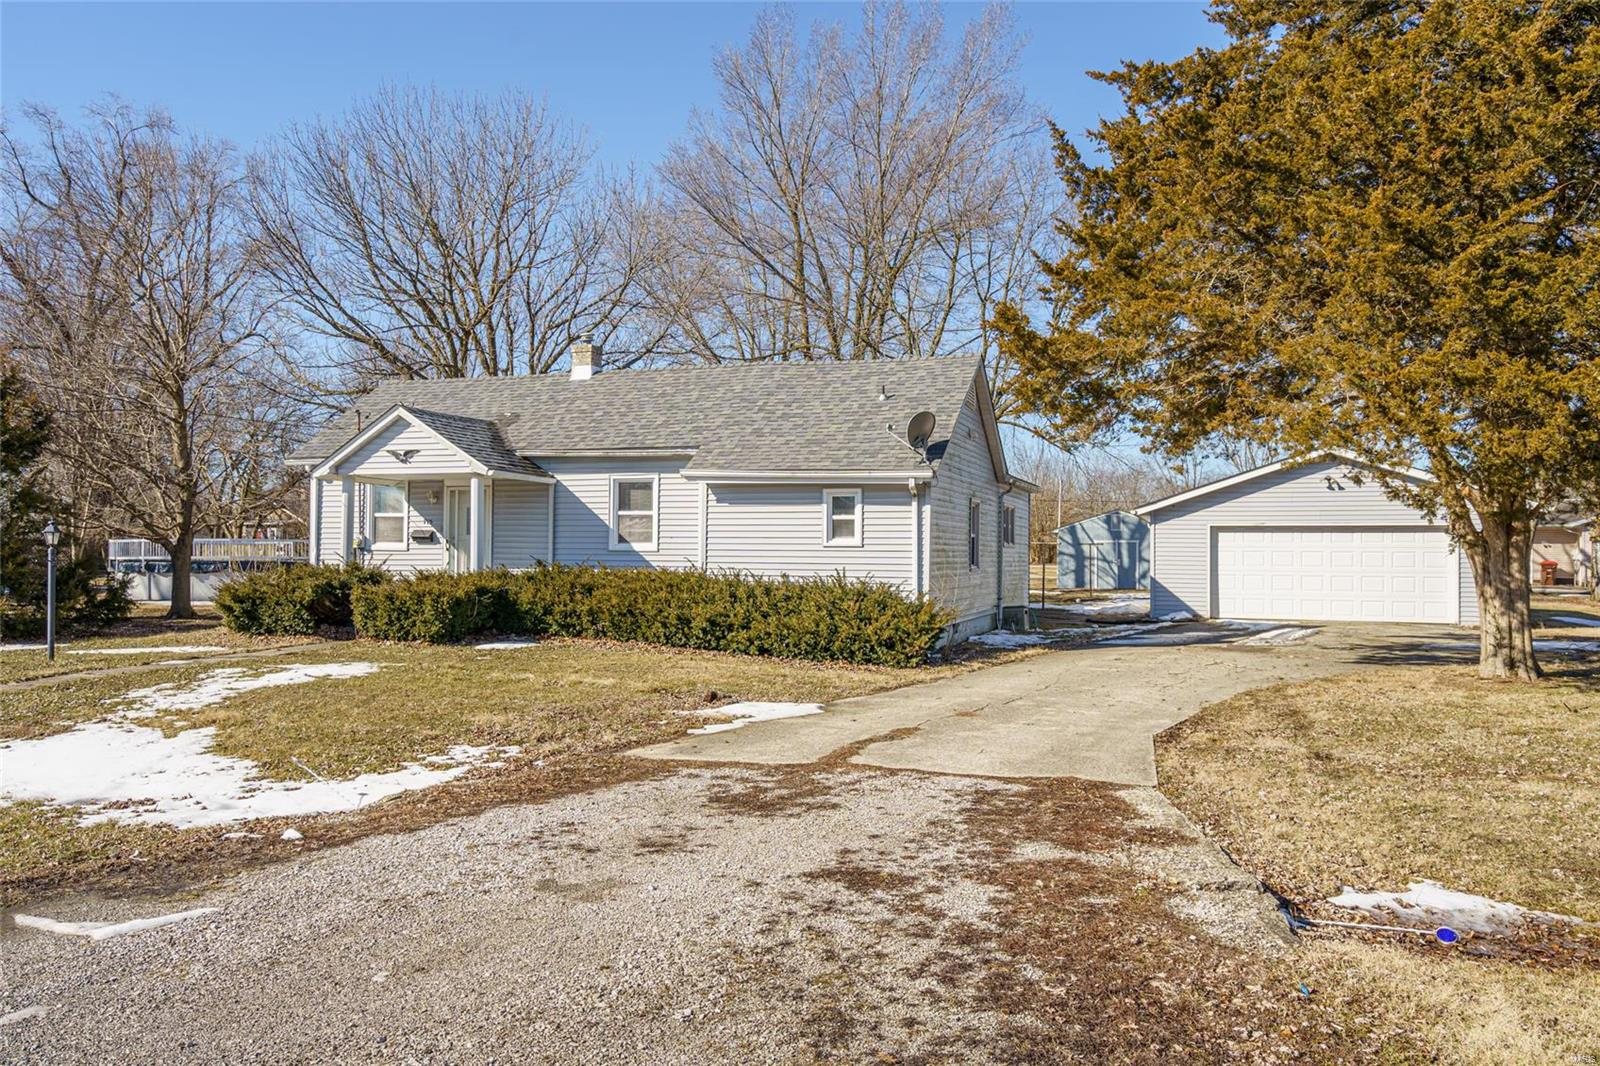 715 N Fourth Property Photo - Benld, IL real estate listing